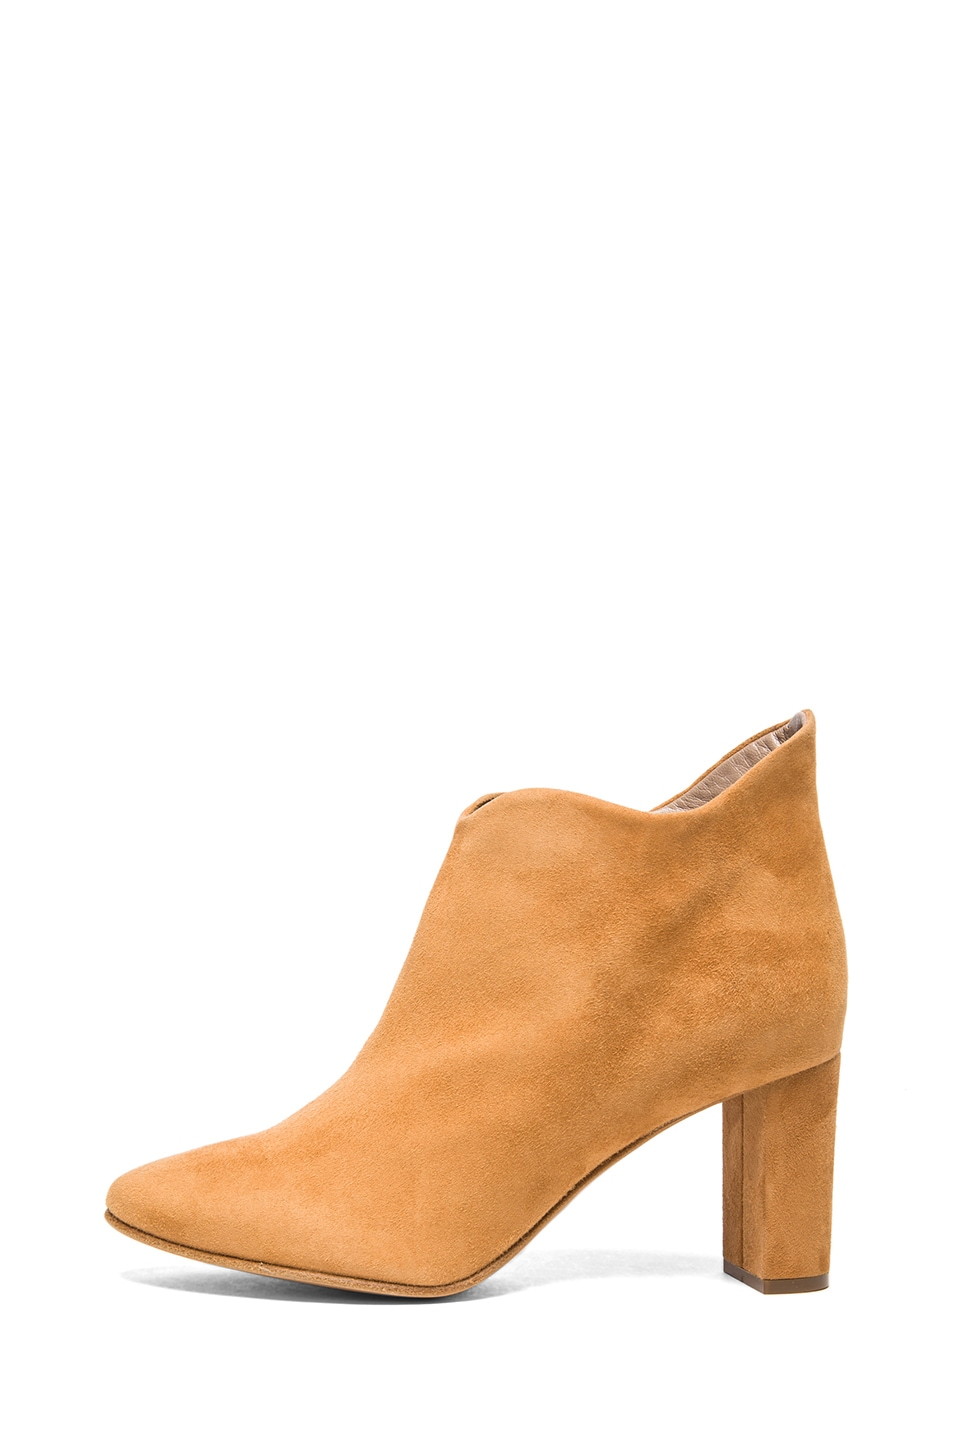 Image 1 of Chloe Suede Booties in Pringle Yellow